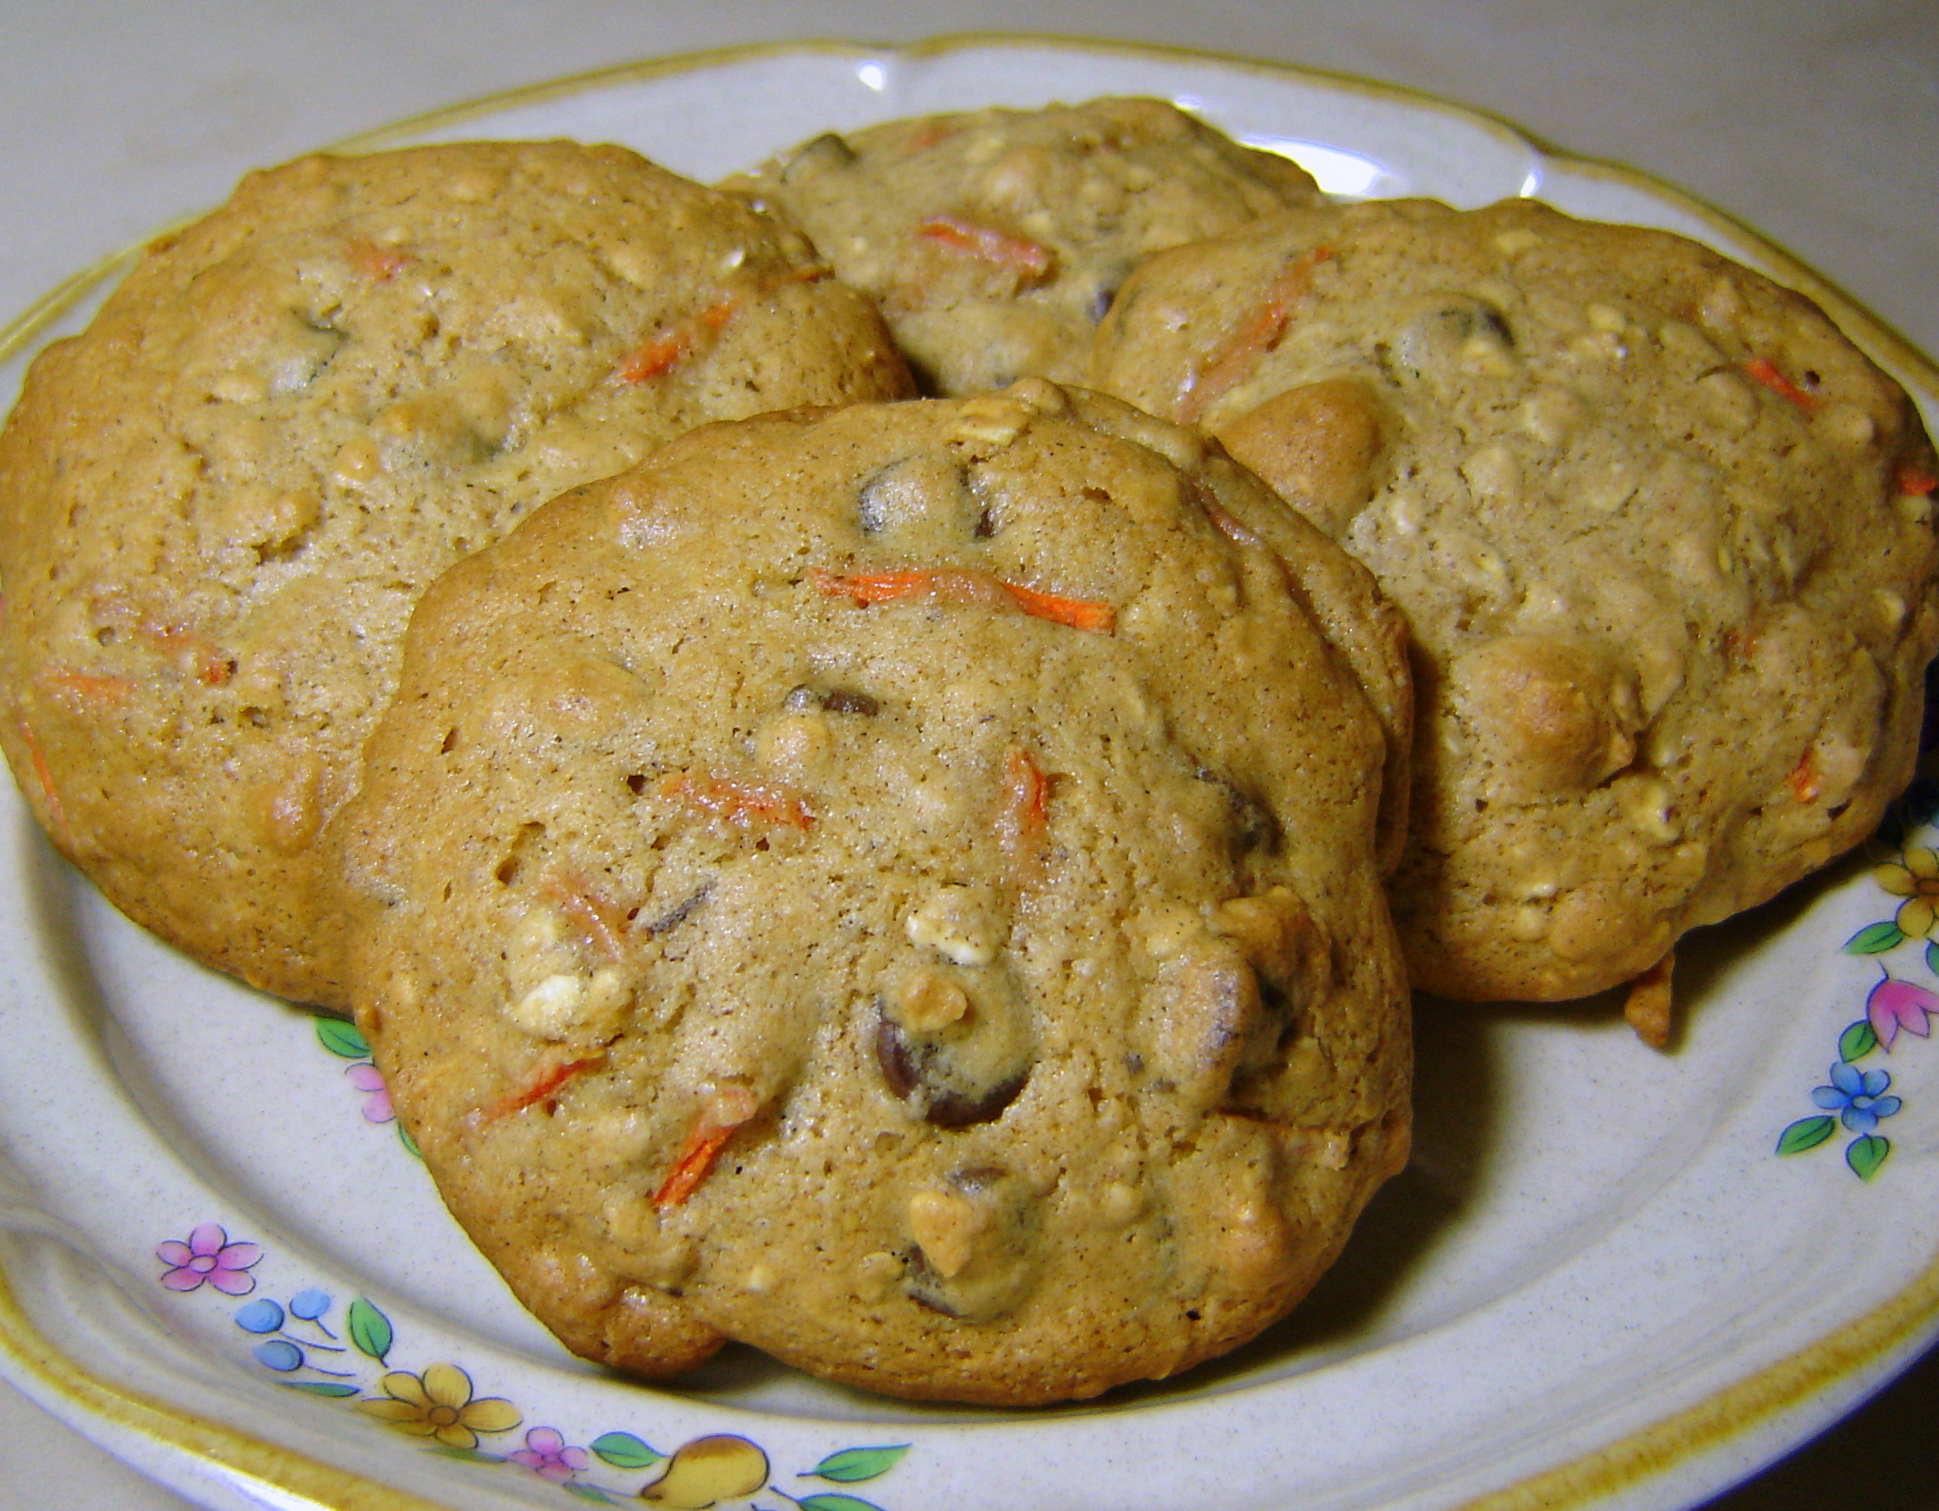 Oatmeal Chocolate Chip Carrot Cookies | At Home in Alaska